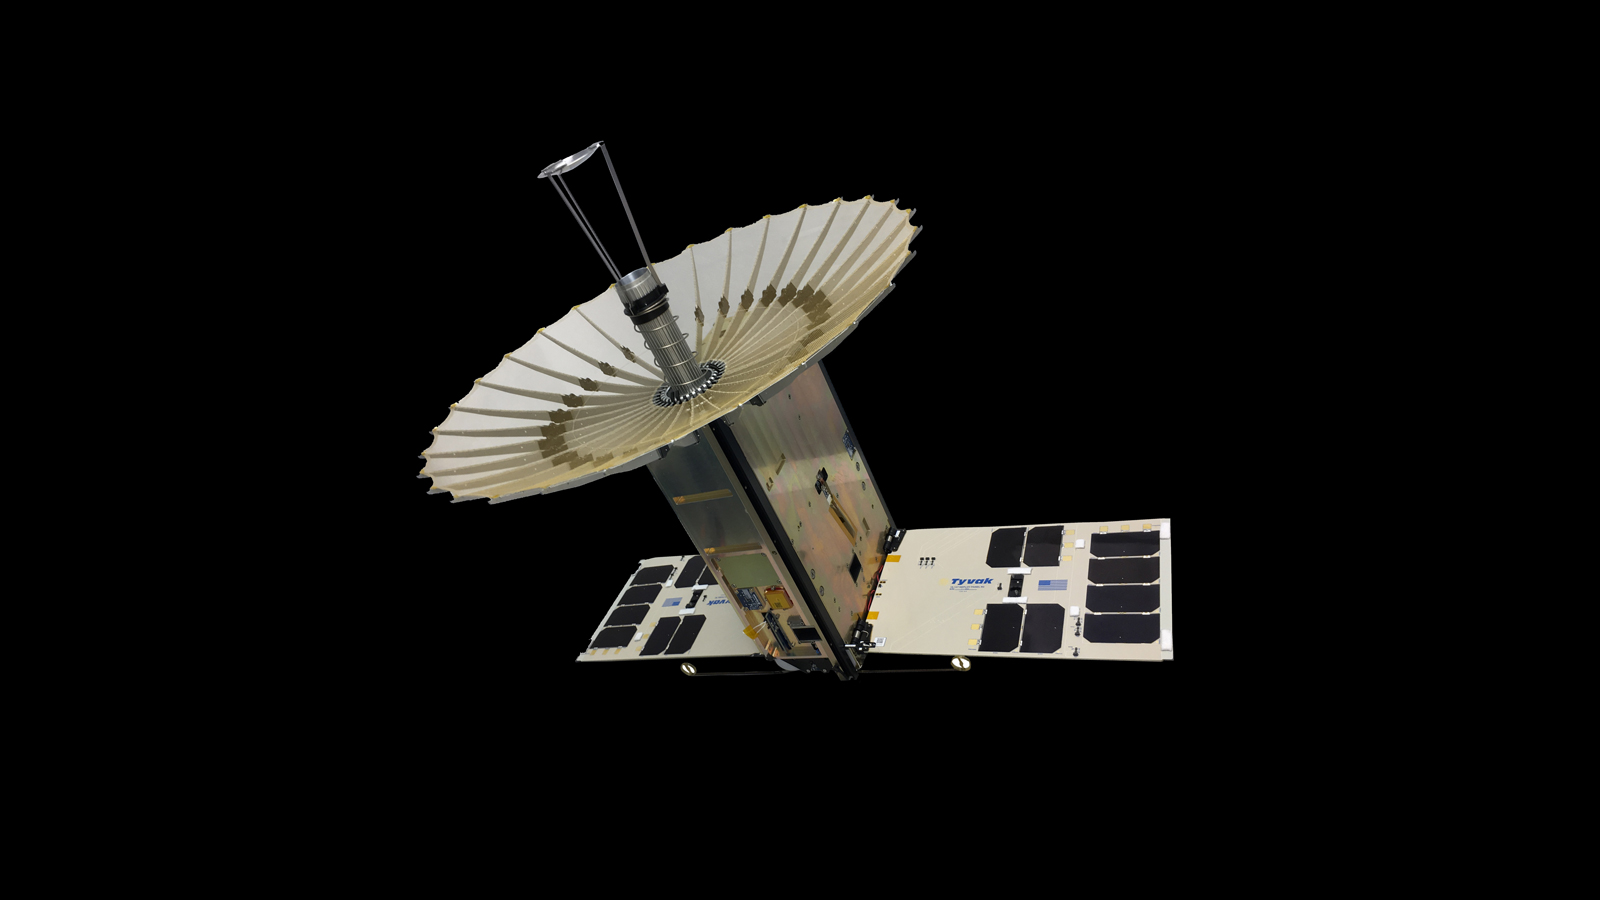 An artist's rendering of the RainCube 6U CubeSat with its antenna and solar panels fully deployed. It along with many other CubeSats, are heading to the ISS inside the OA-9 Cygnus spacecraft. Photo Credit: NASA / JPL-Caltech